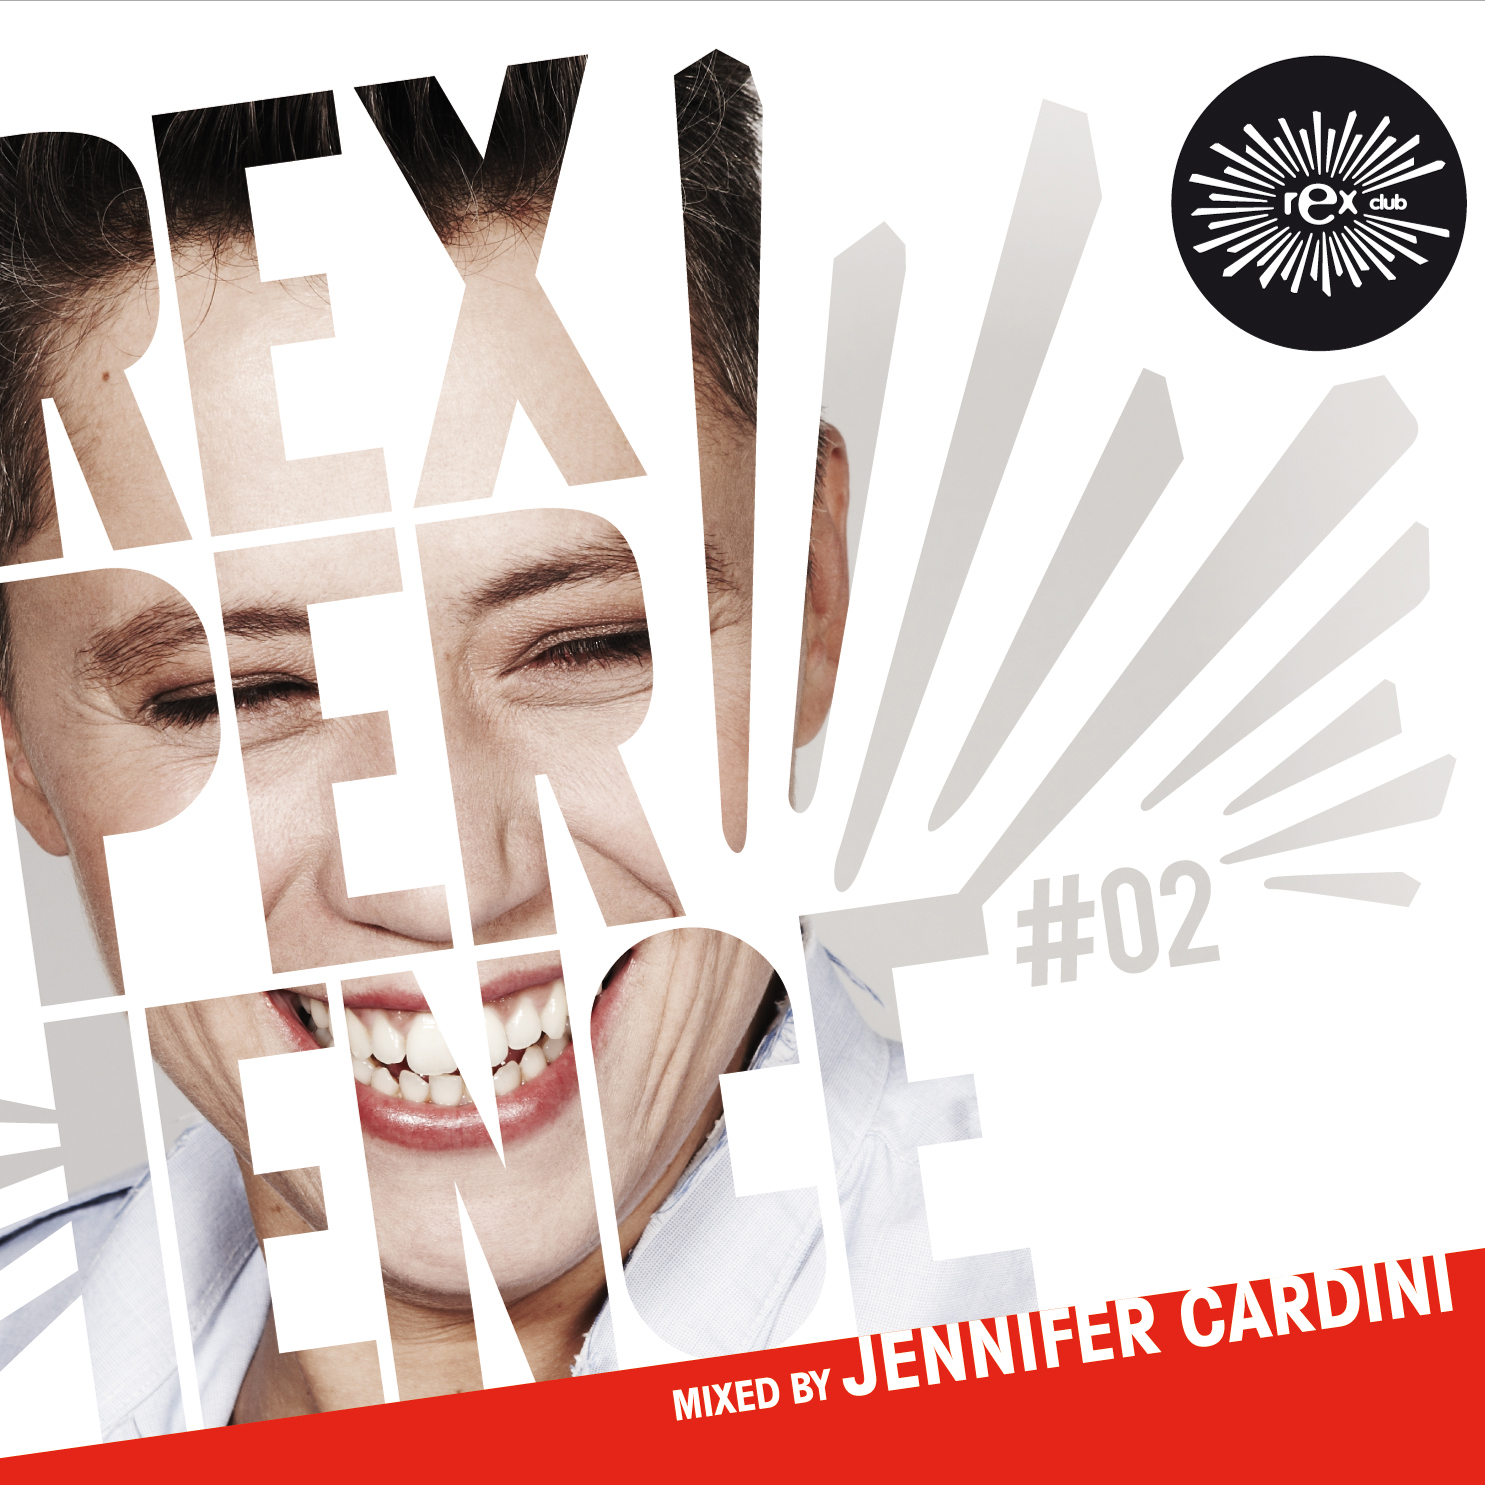 Rexperience - Volume 2 (Mixed by Jennifer Cardini)